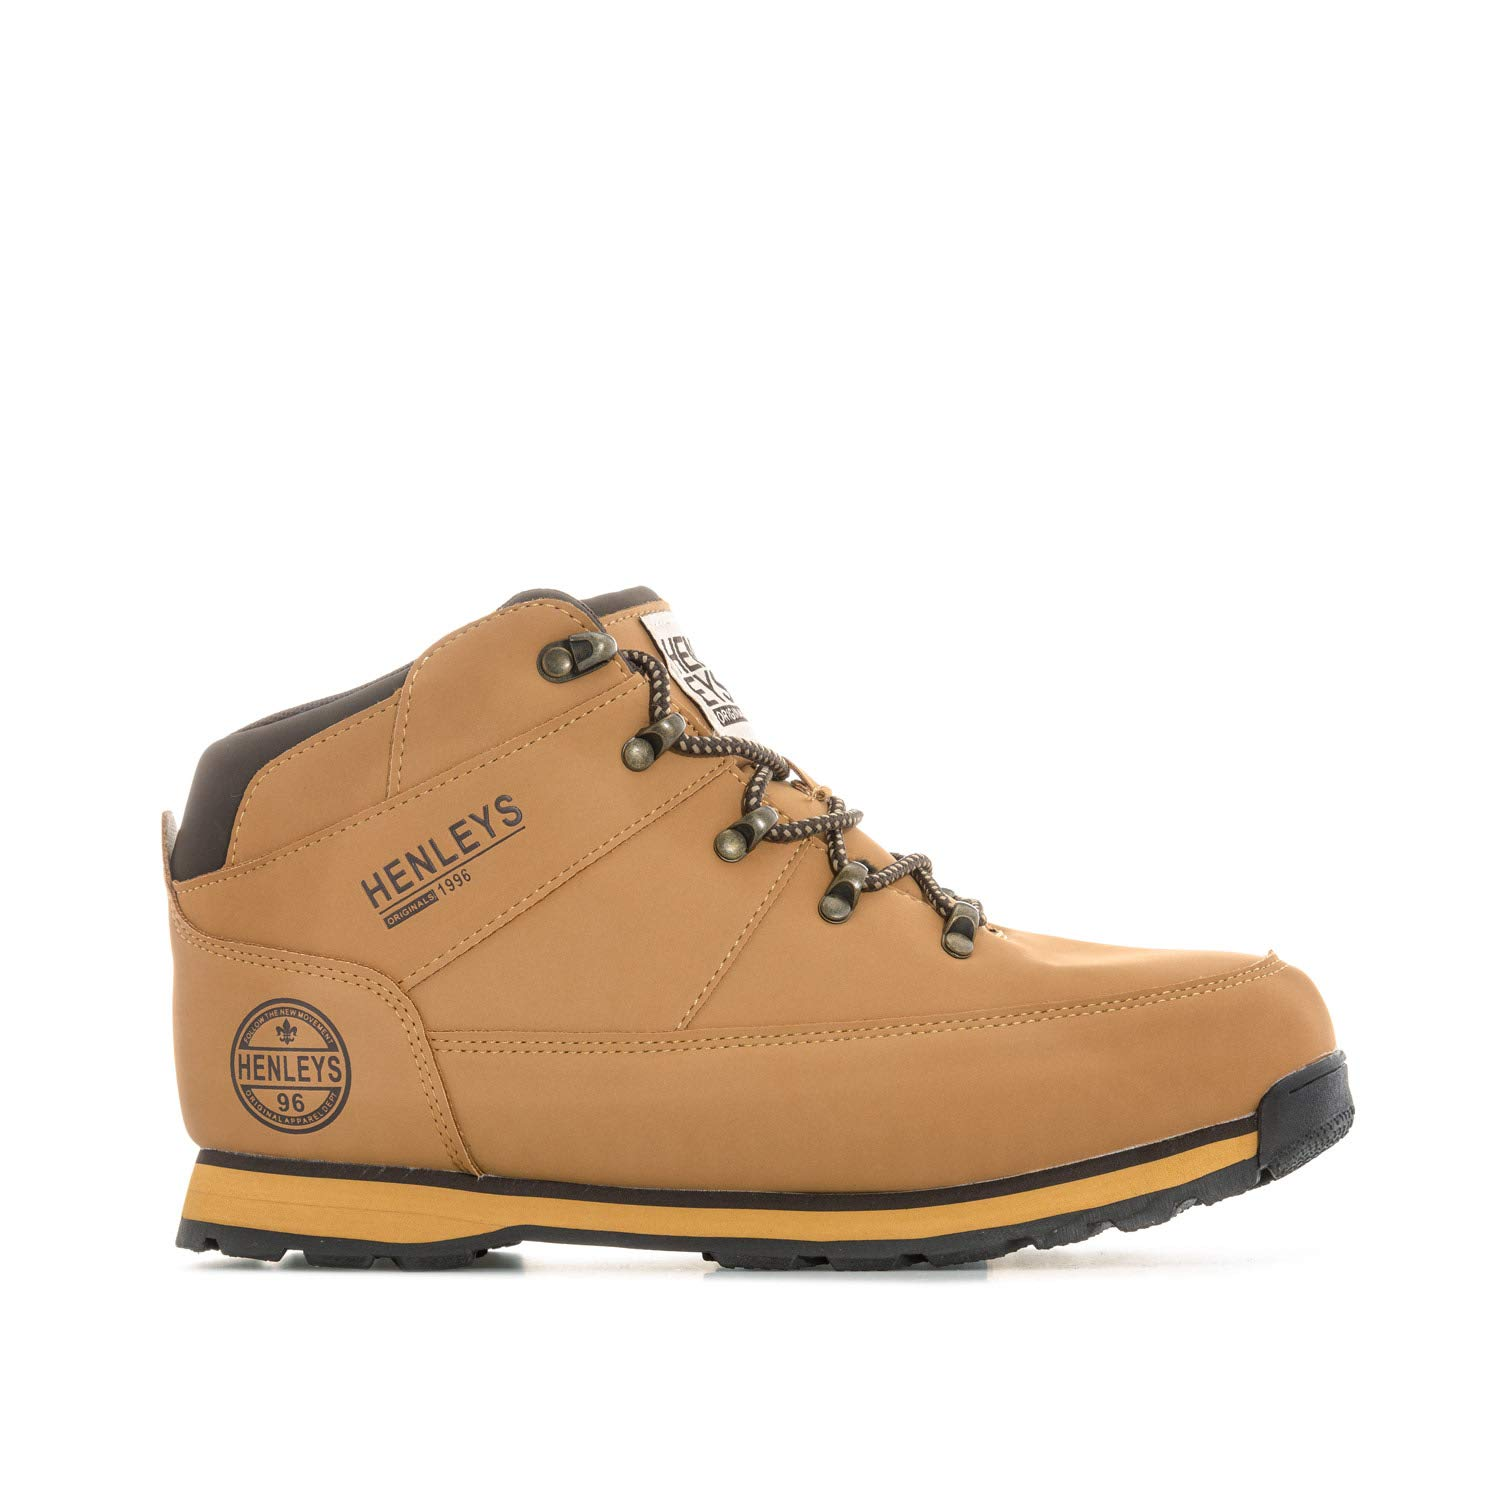 3f07fe13a06 Henleys Mens Mens Woodland Boots in Wheat - UK 11: Amazon.co.uk ...